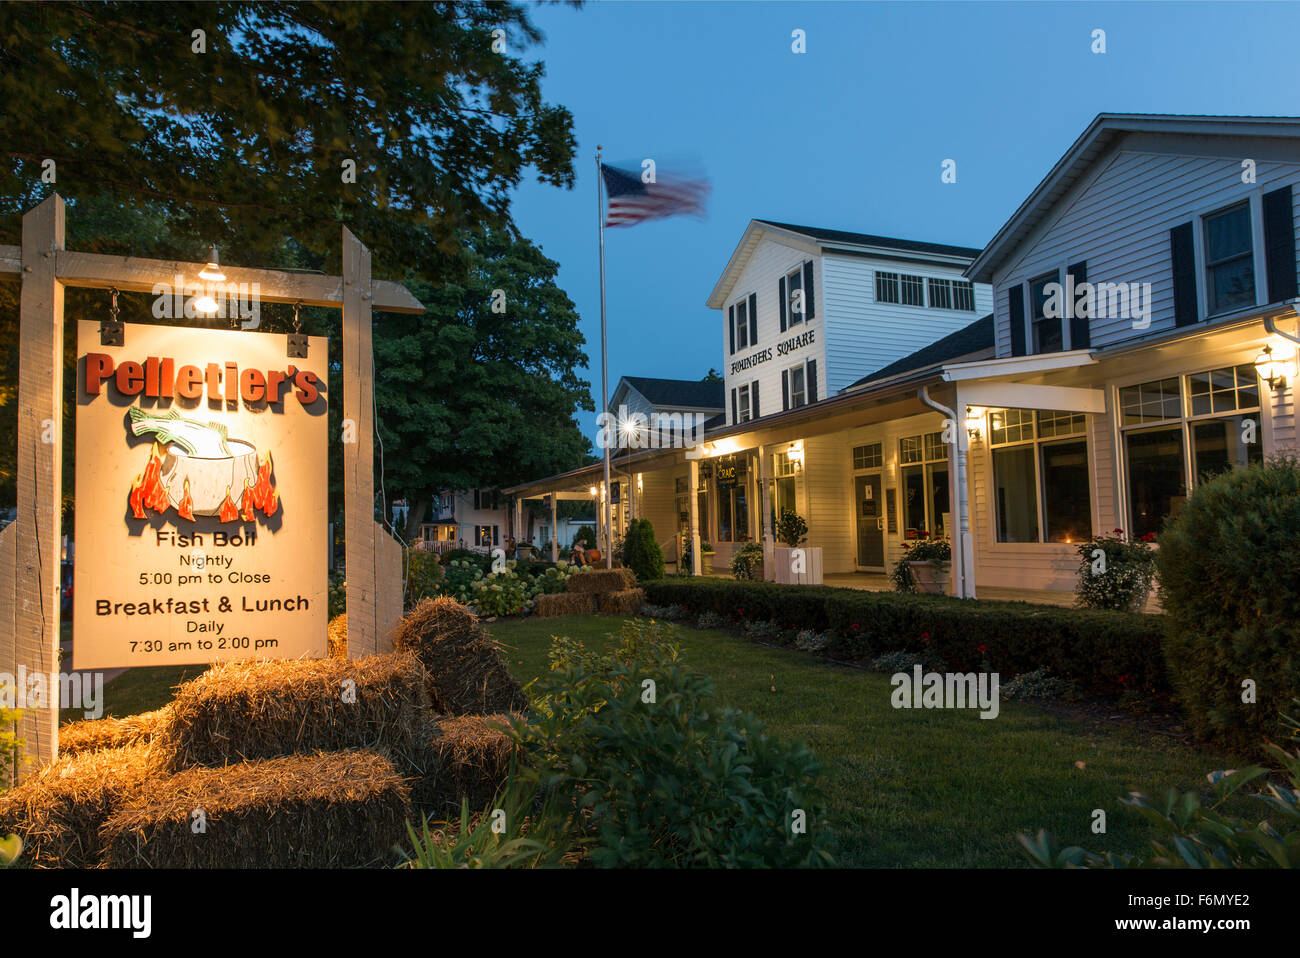 USA,Wisconsin,Door County, Fish Creek, Pelletier's fish boil sign - Stock Image